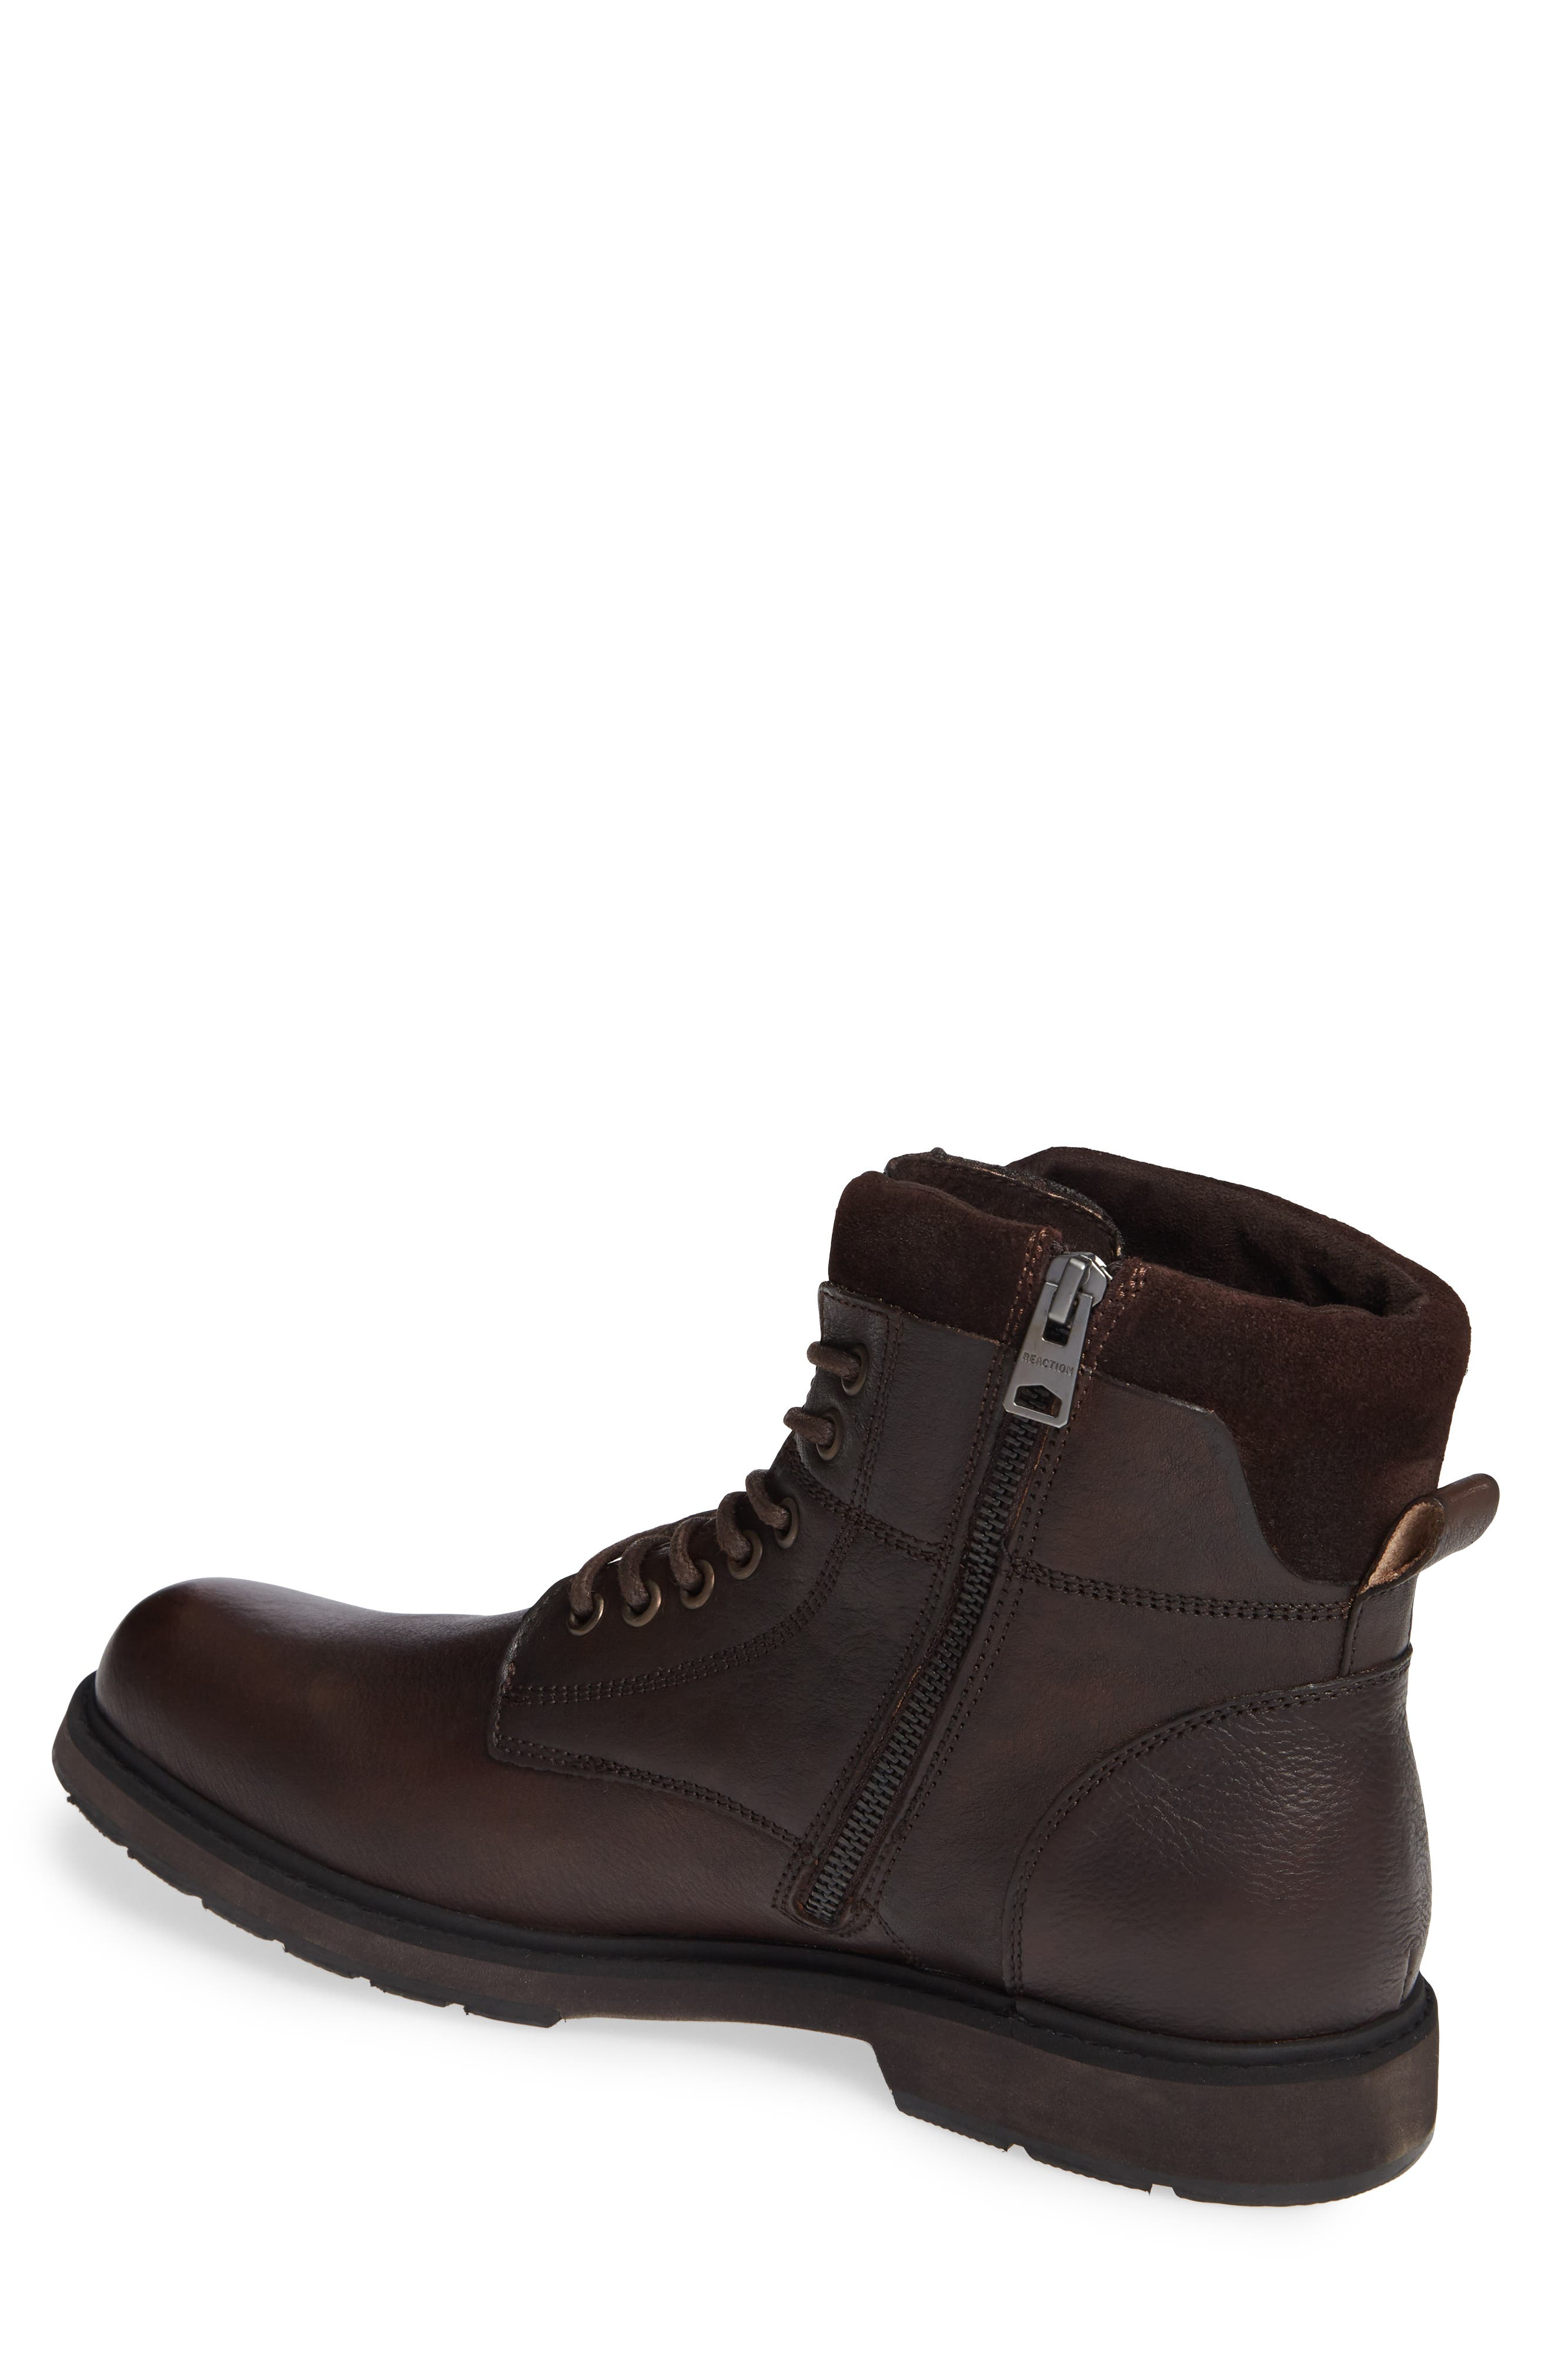 988169b4702 Mens Reaction Kenneth Cole Boots